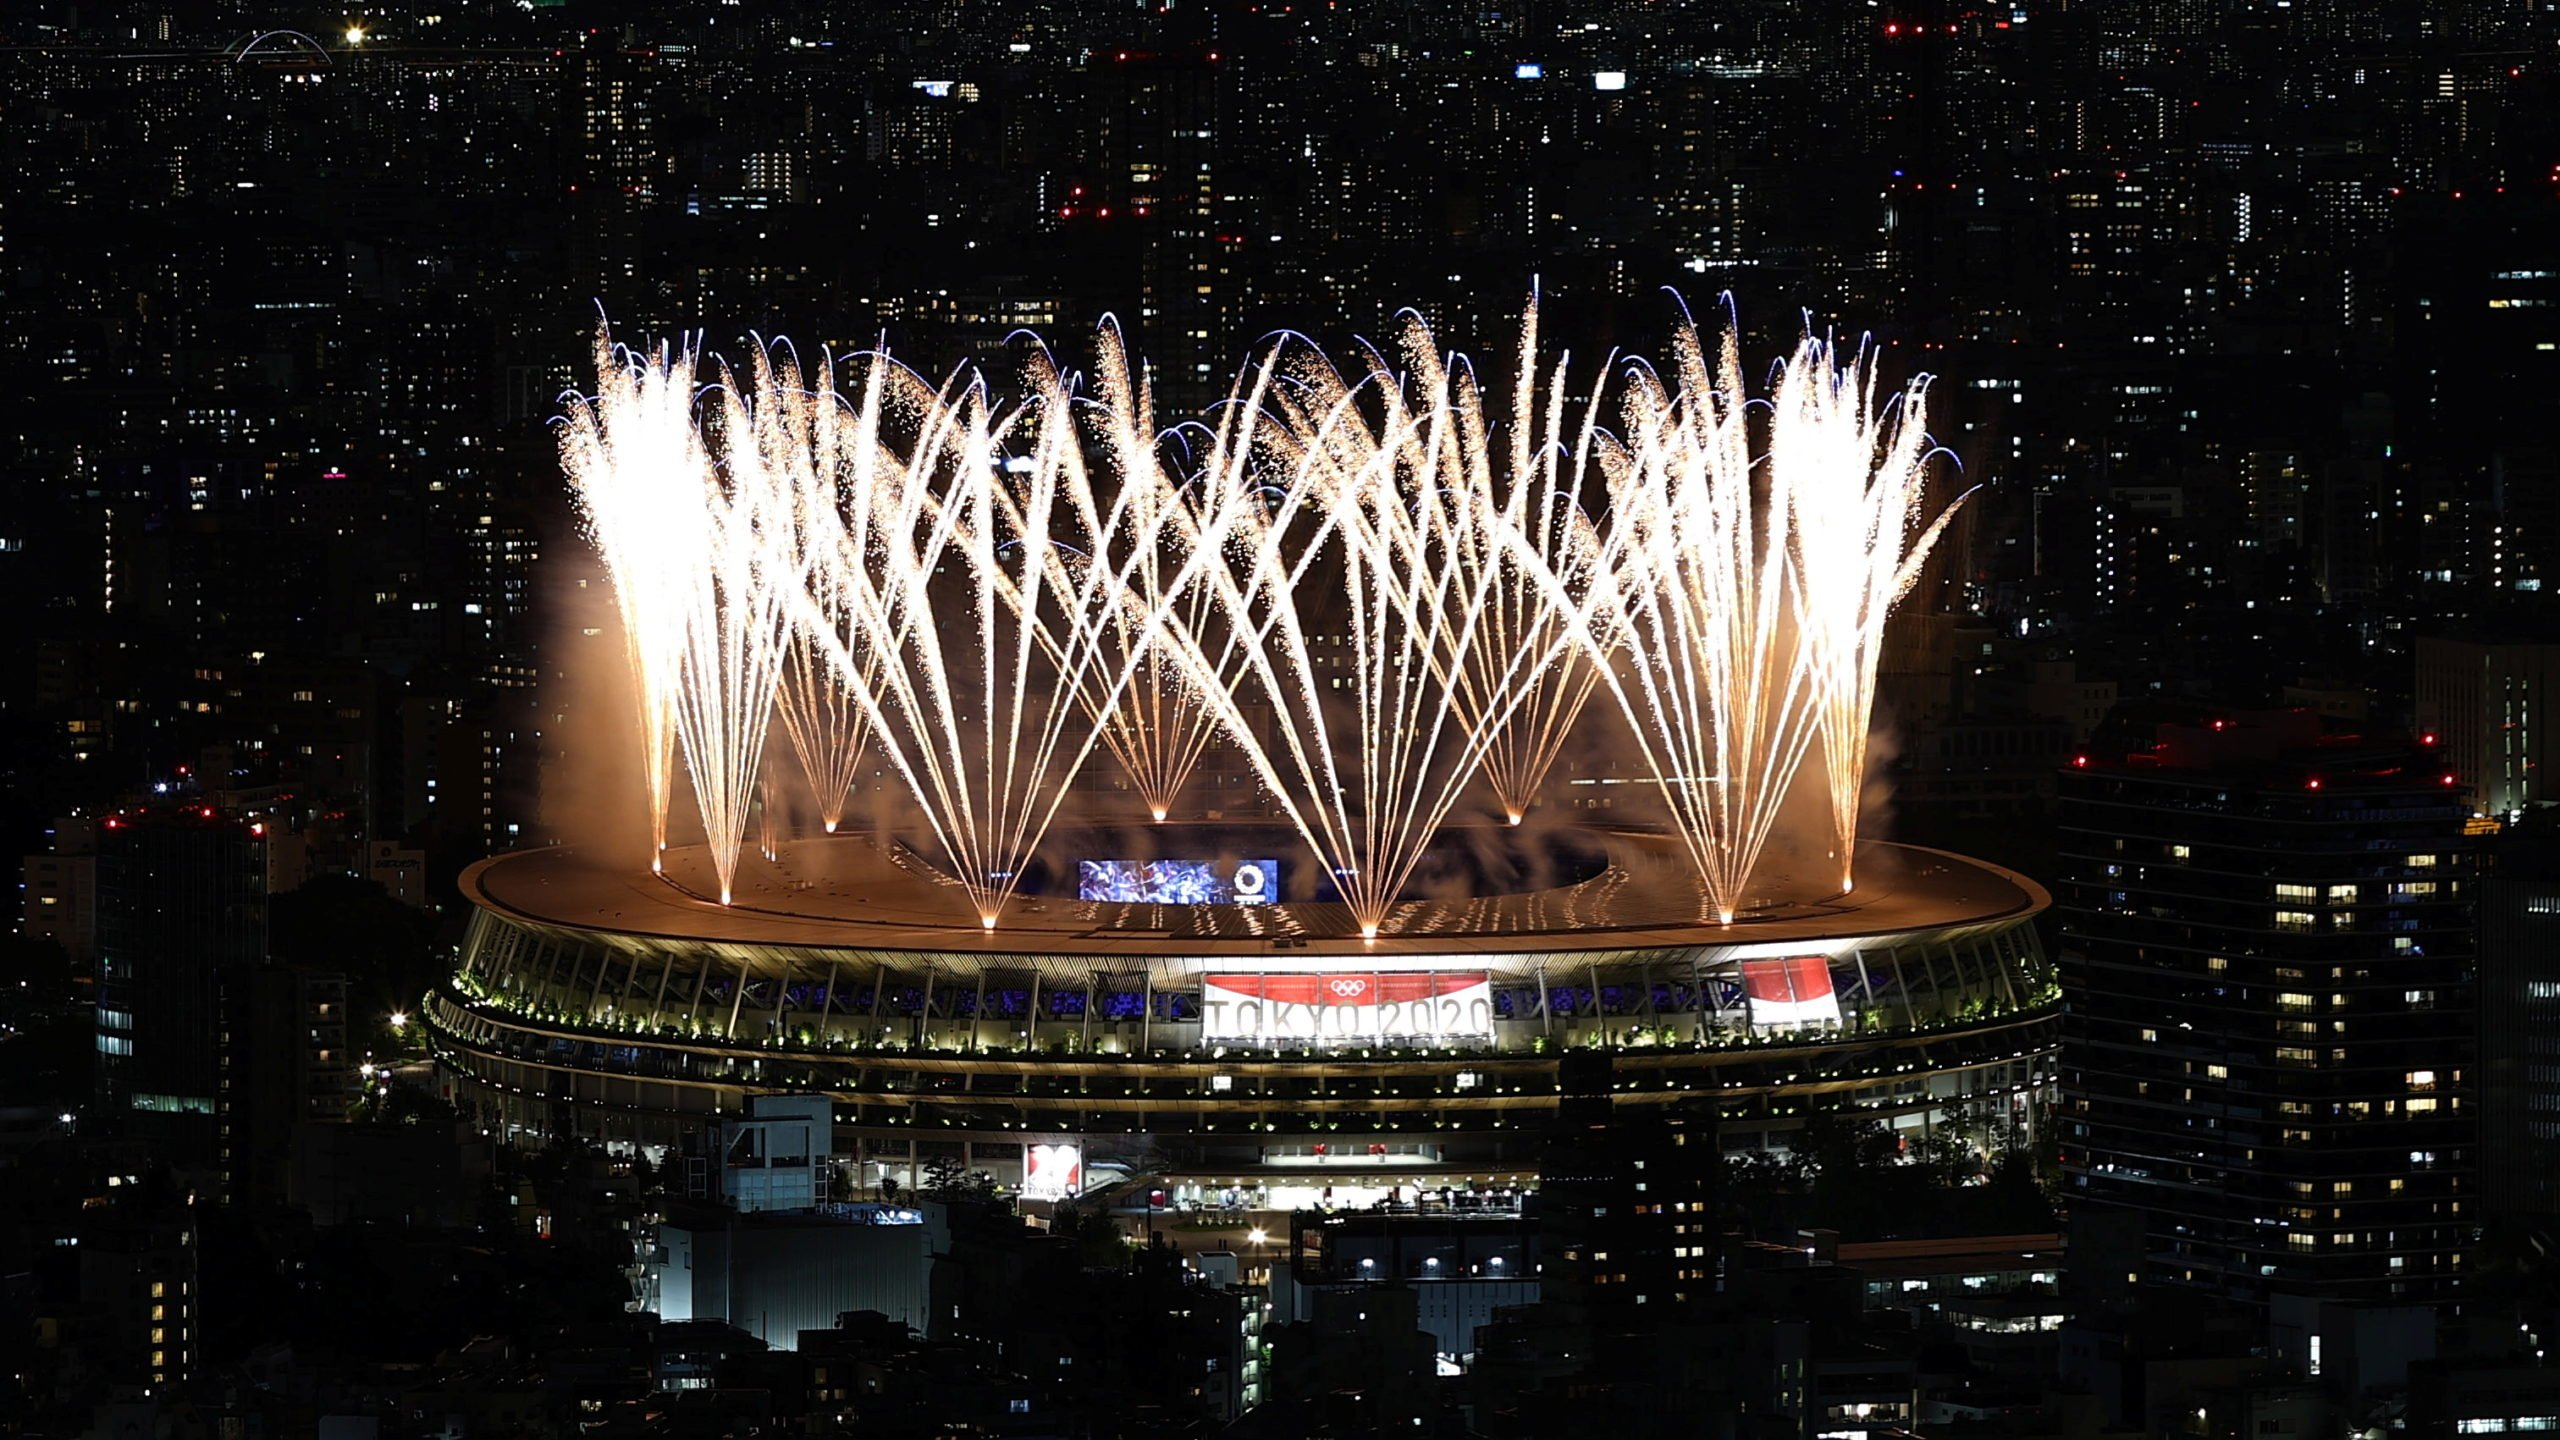 Olympics ceremony uses music from Japanese video games